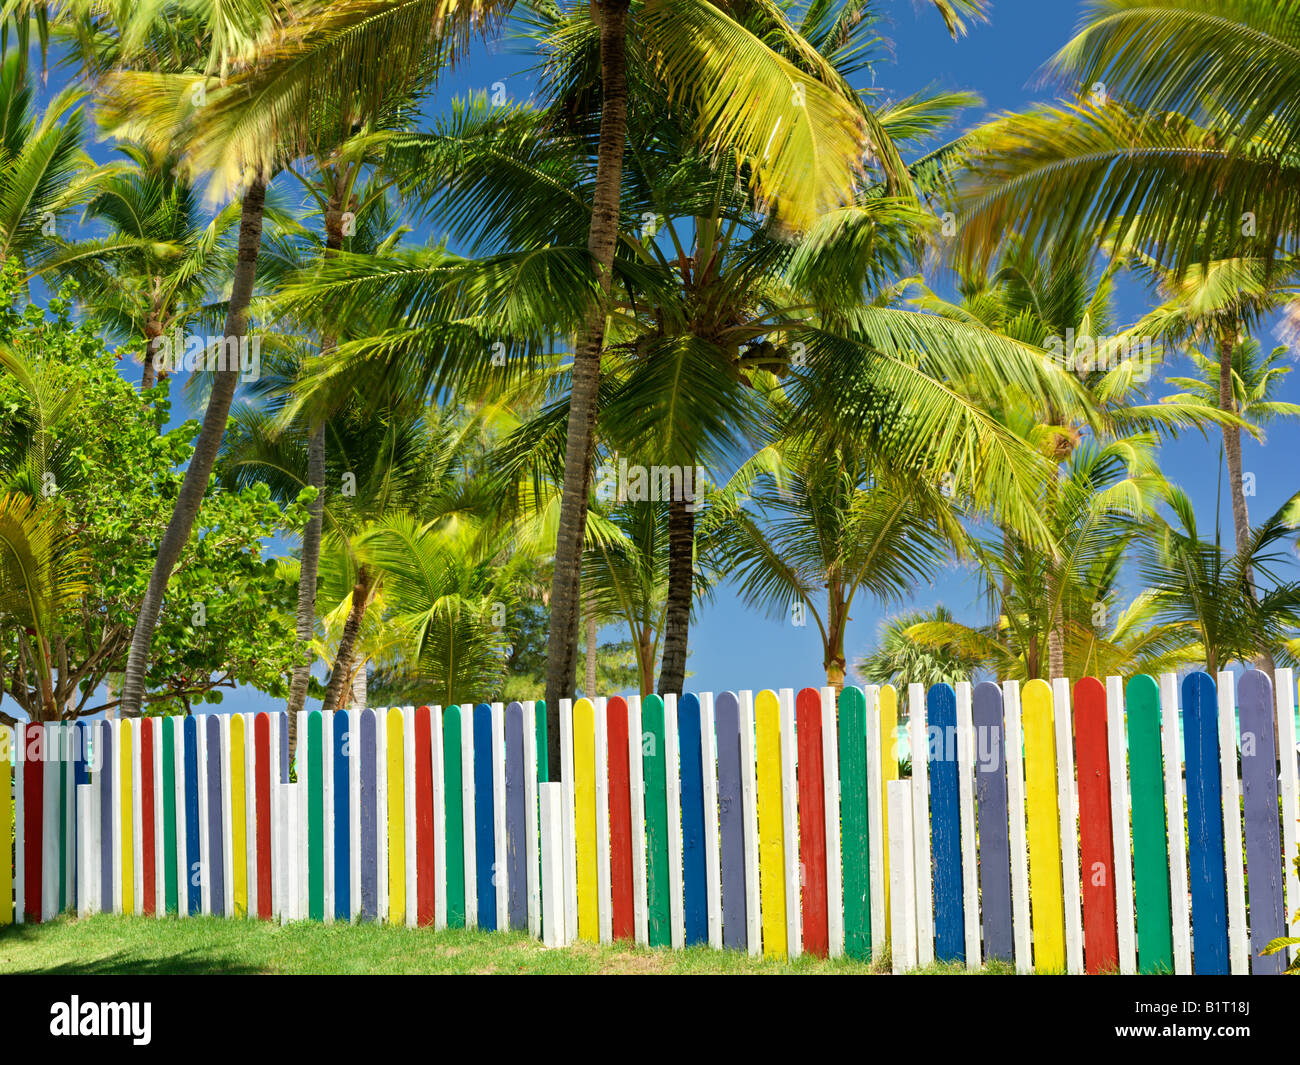 Dominican Republic Punta Cana Bavaro Beach multi colored picket fence and palm trees - Stock Image